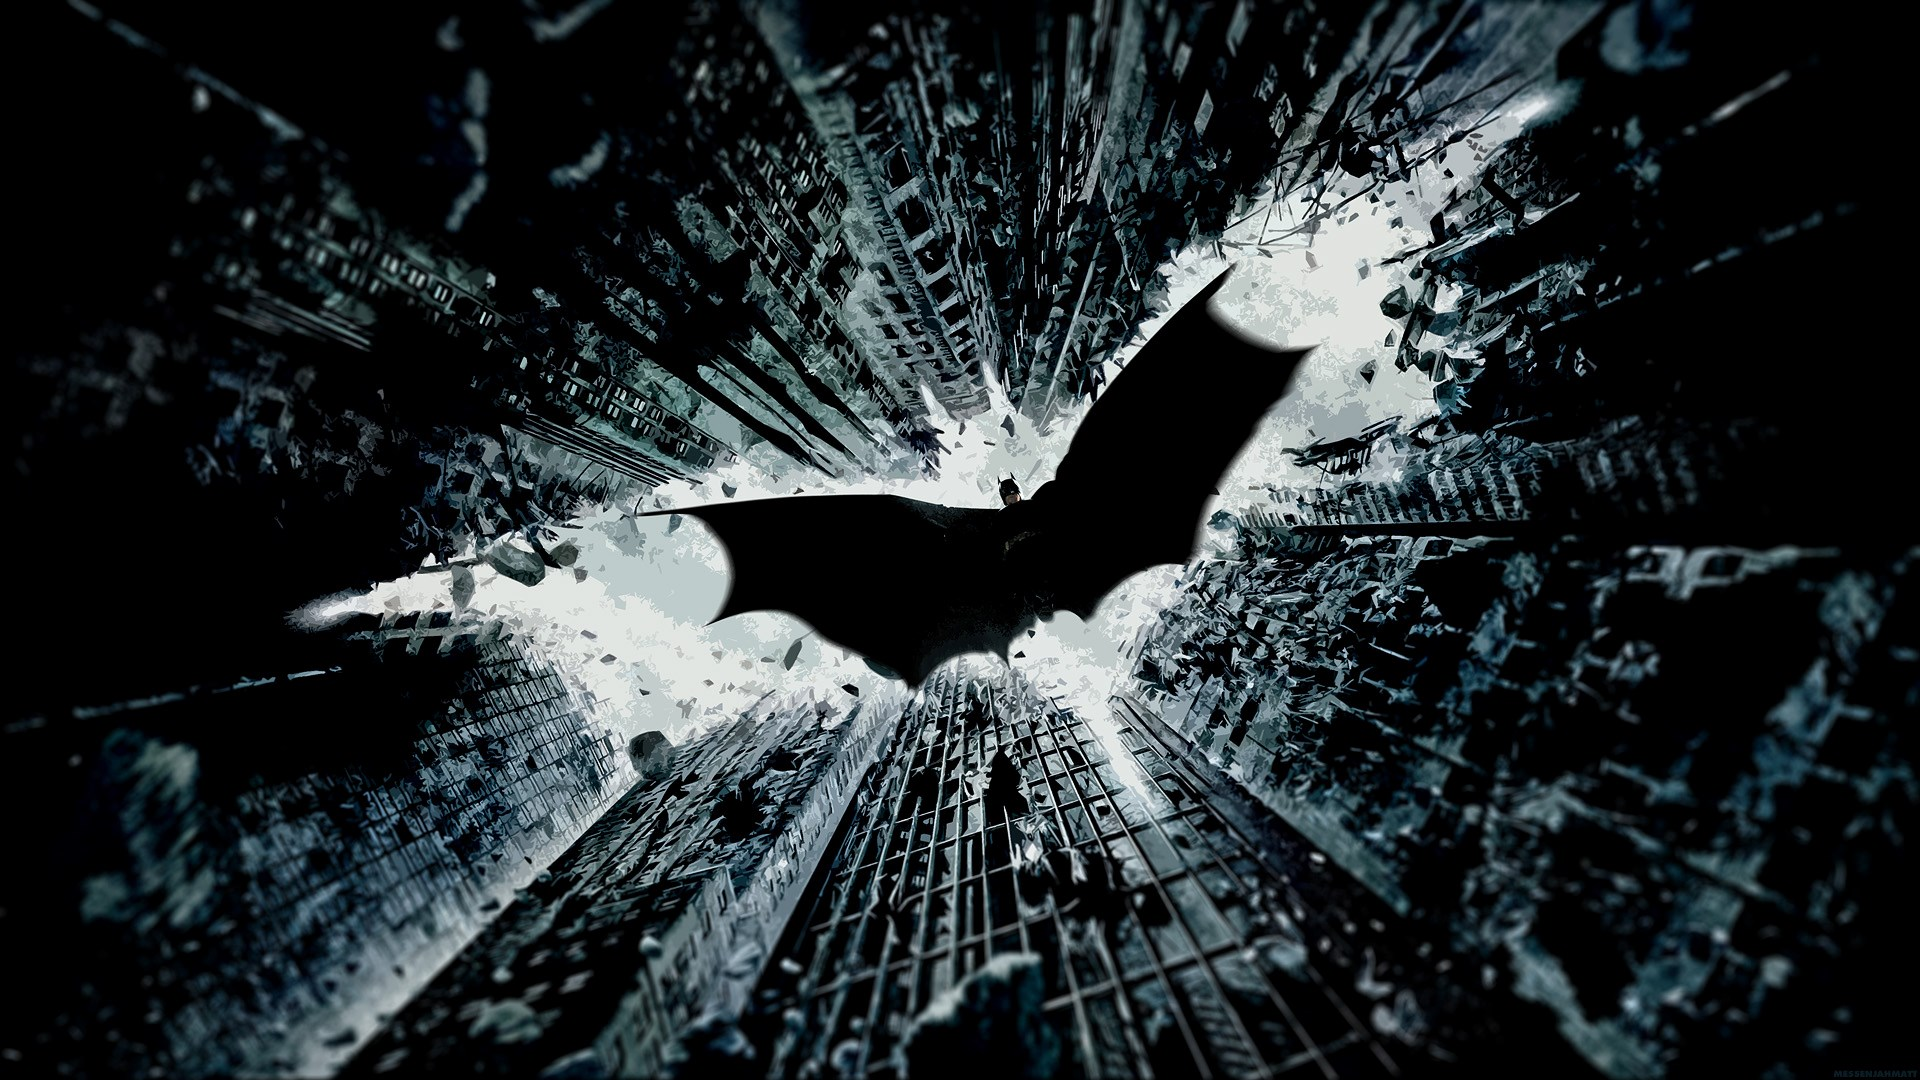 batman-backgrounds-hd-1920-x-1080-kB-wallpaper-wp3603010